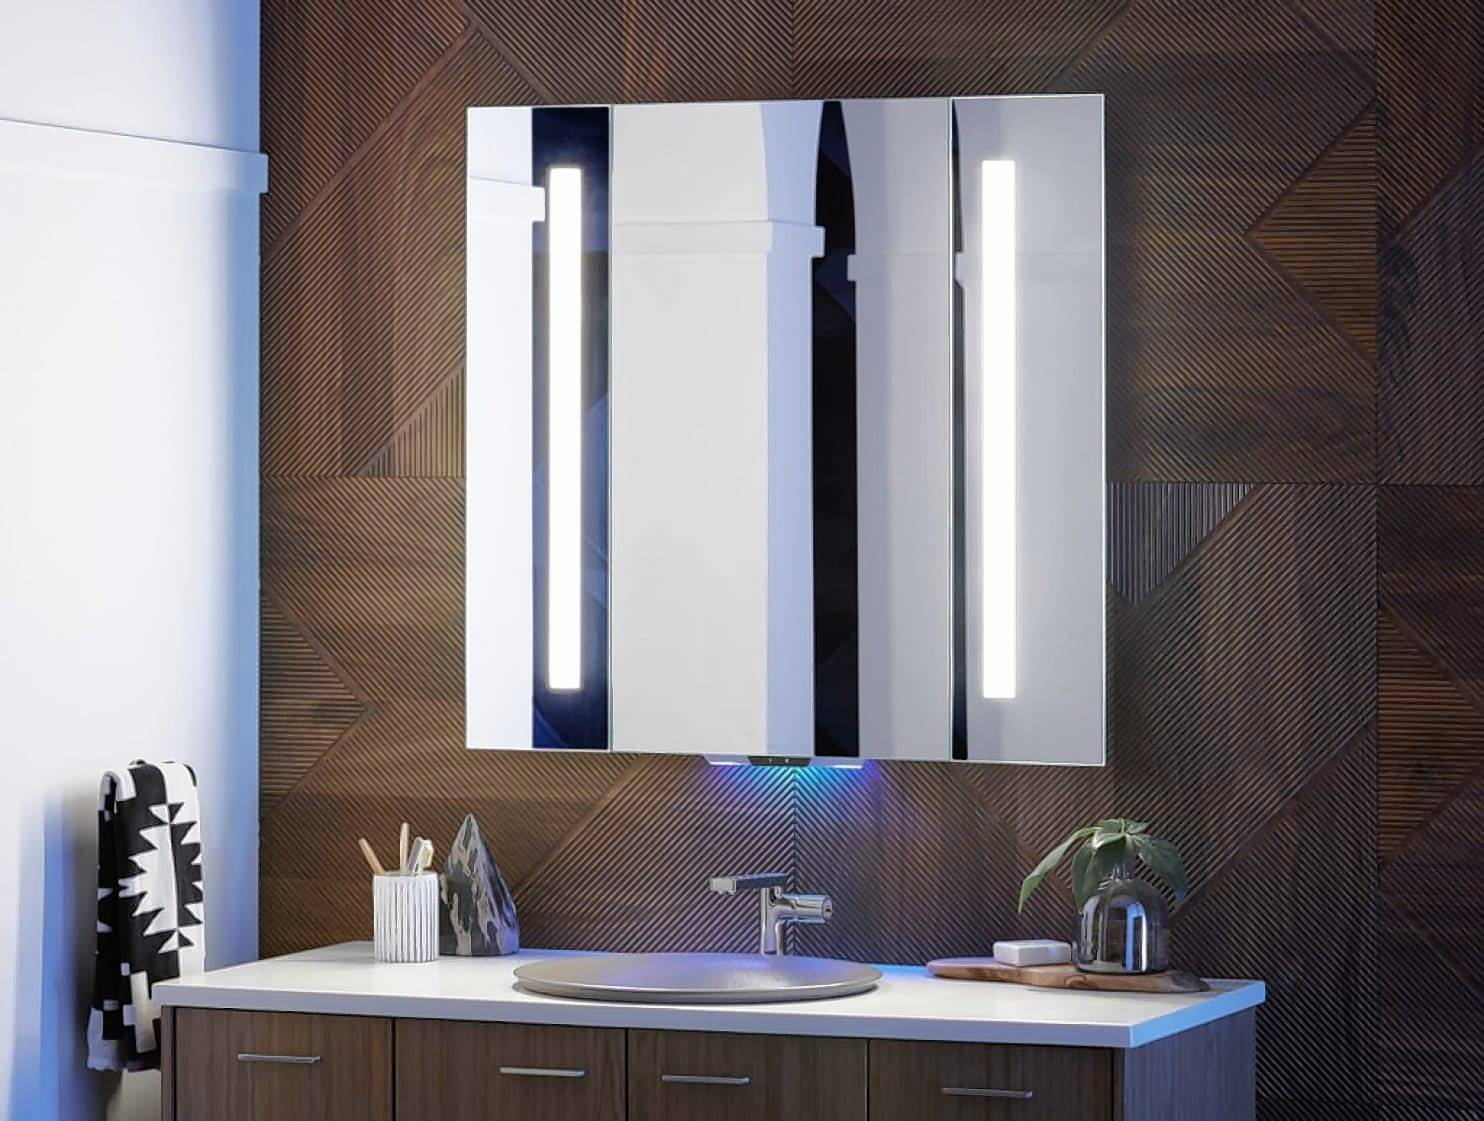 The Alexa-enabled Verdera mirror plays music and podcasts.